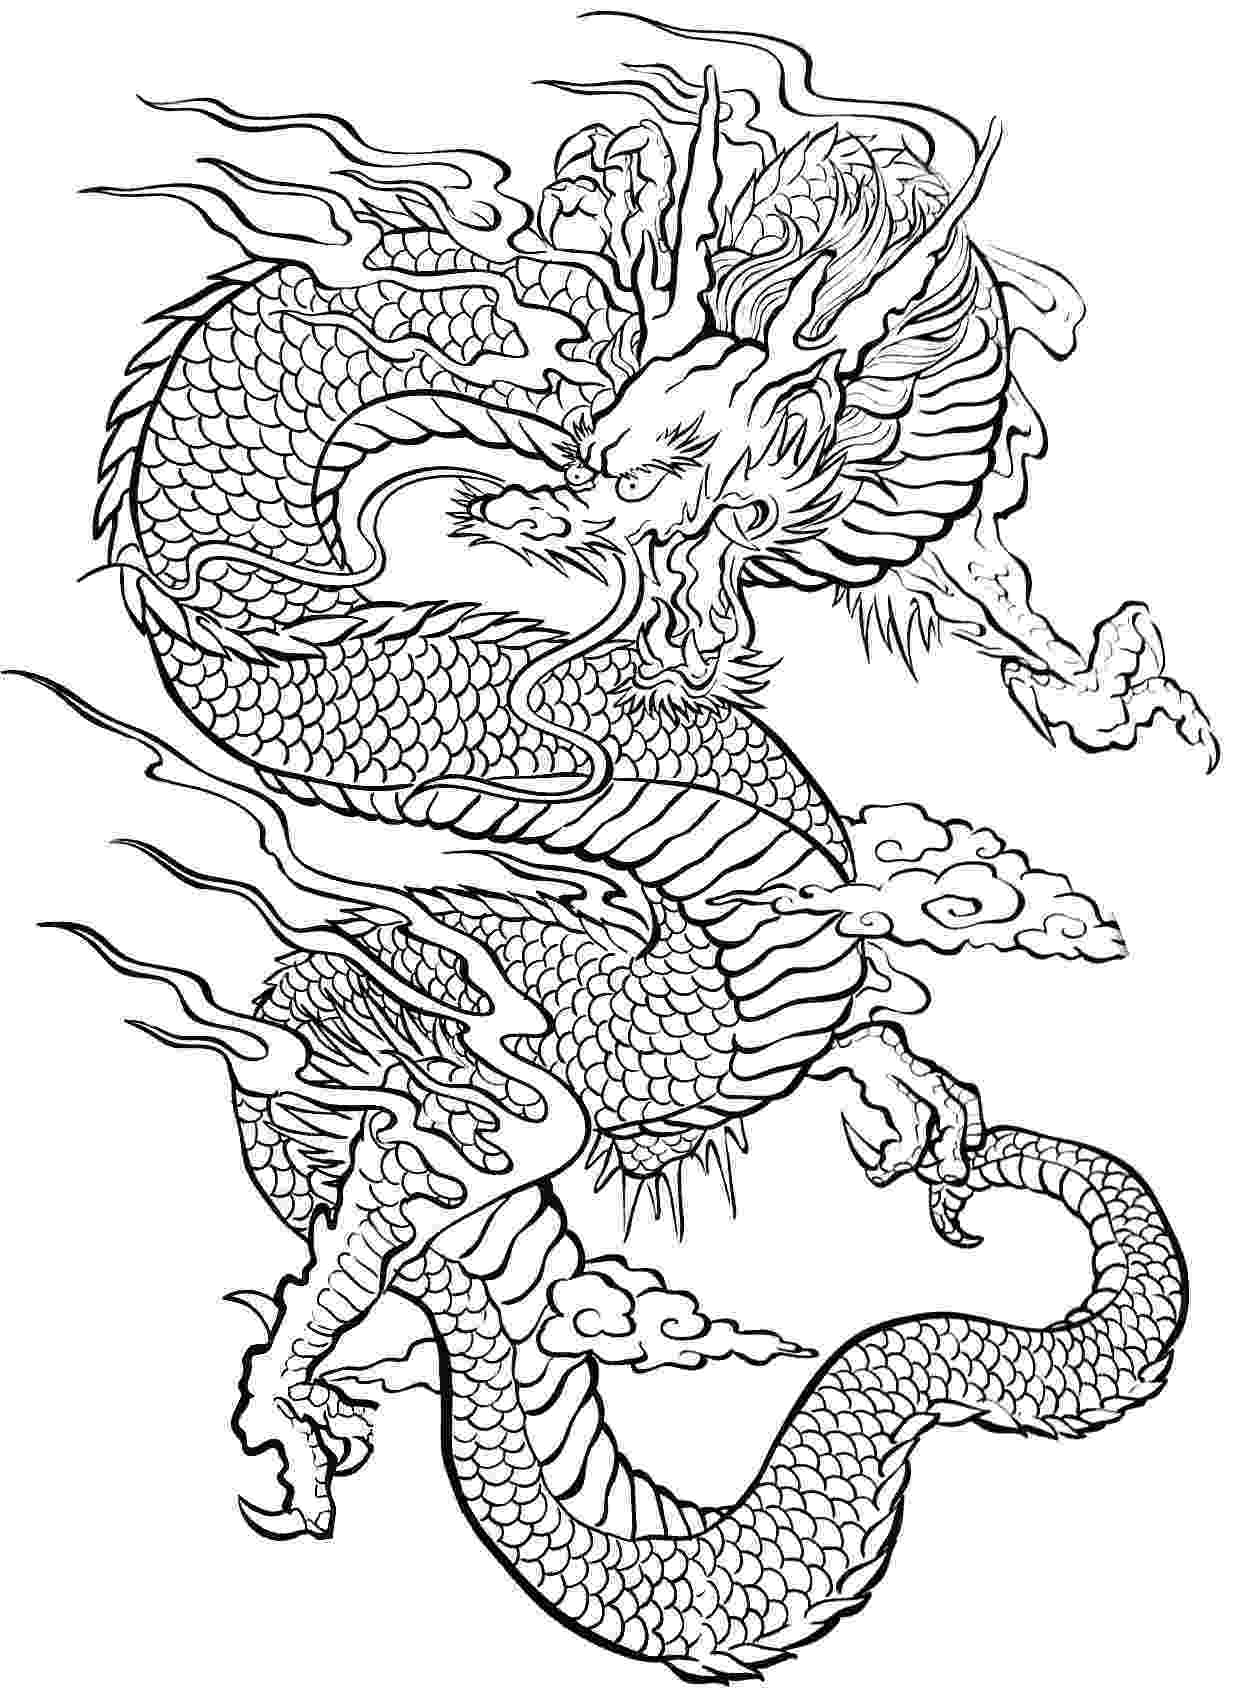 coloring pages for tattoos creative haven modern tattoo designs coloring book dover tattoos pages coloring for